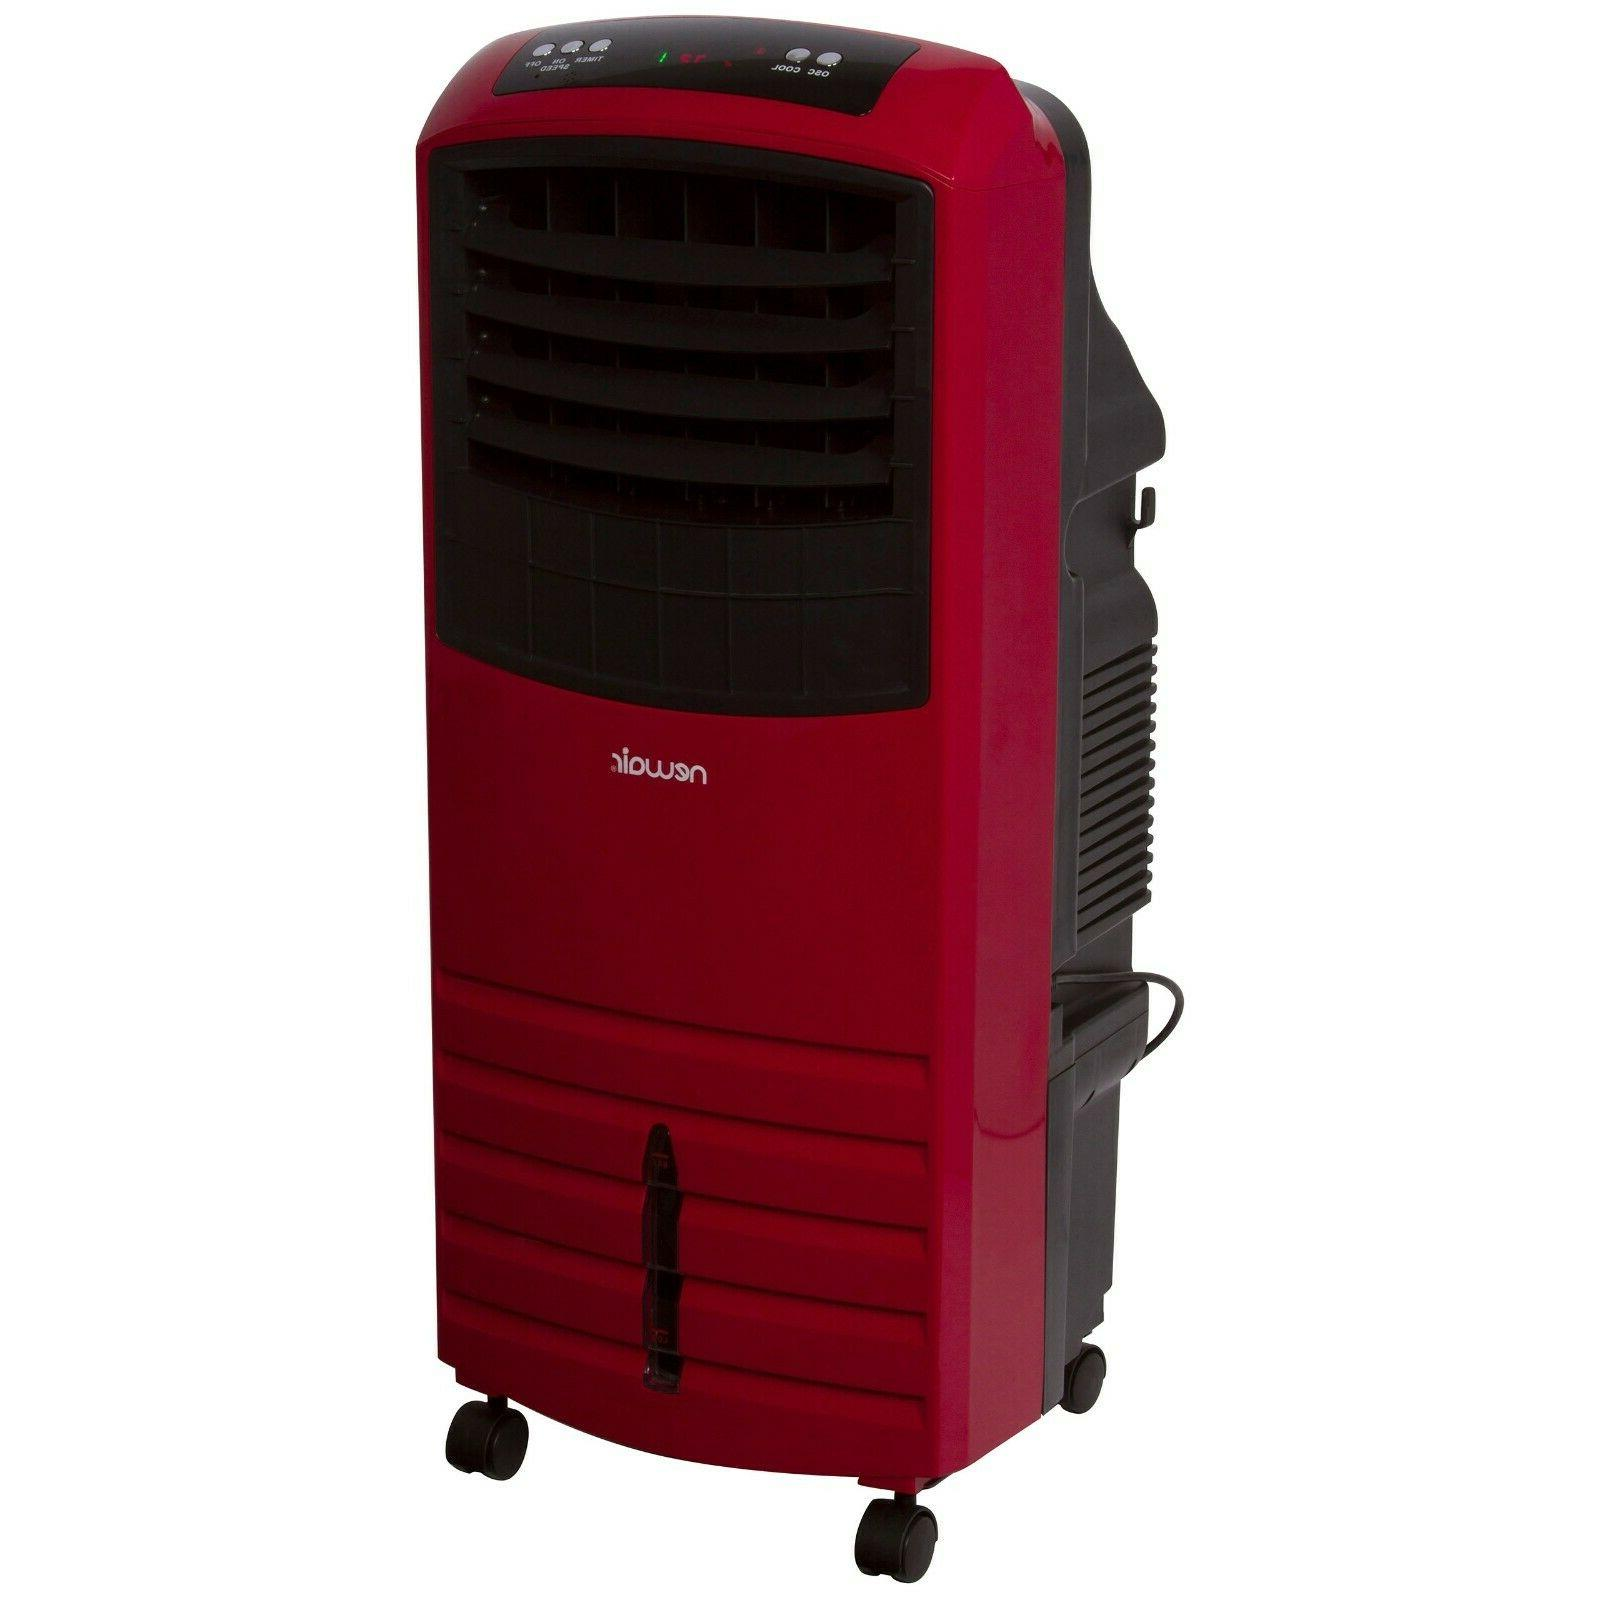 Honeywell DH70W Energy Star 70-Pint Dehumidifier